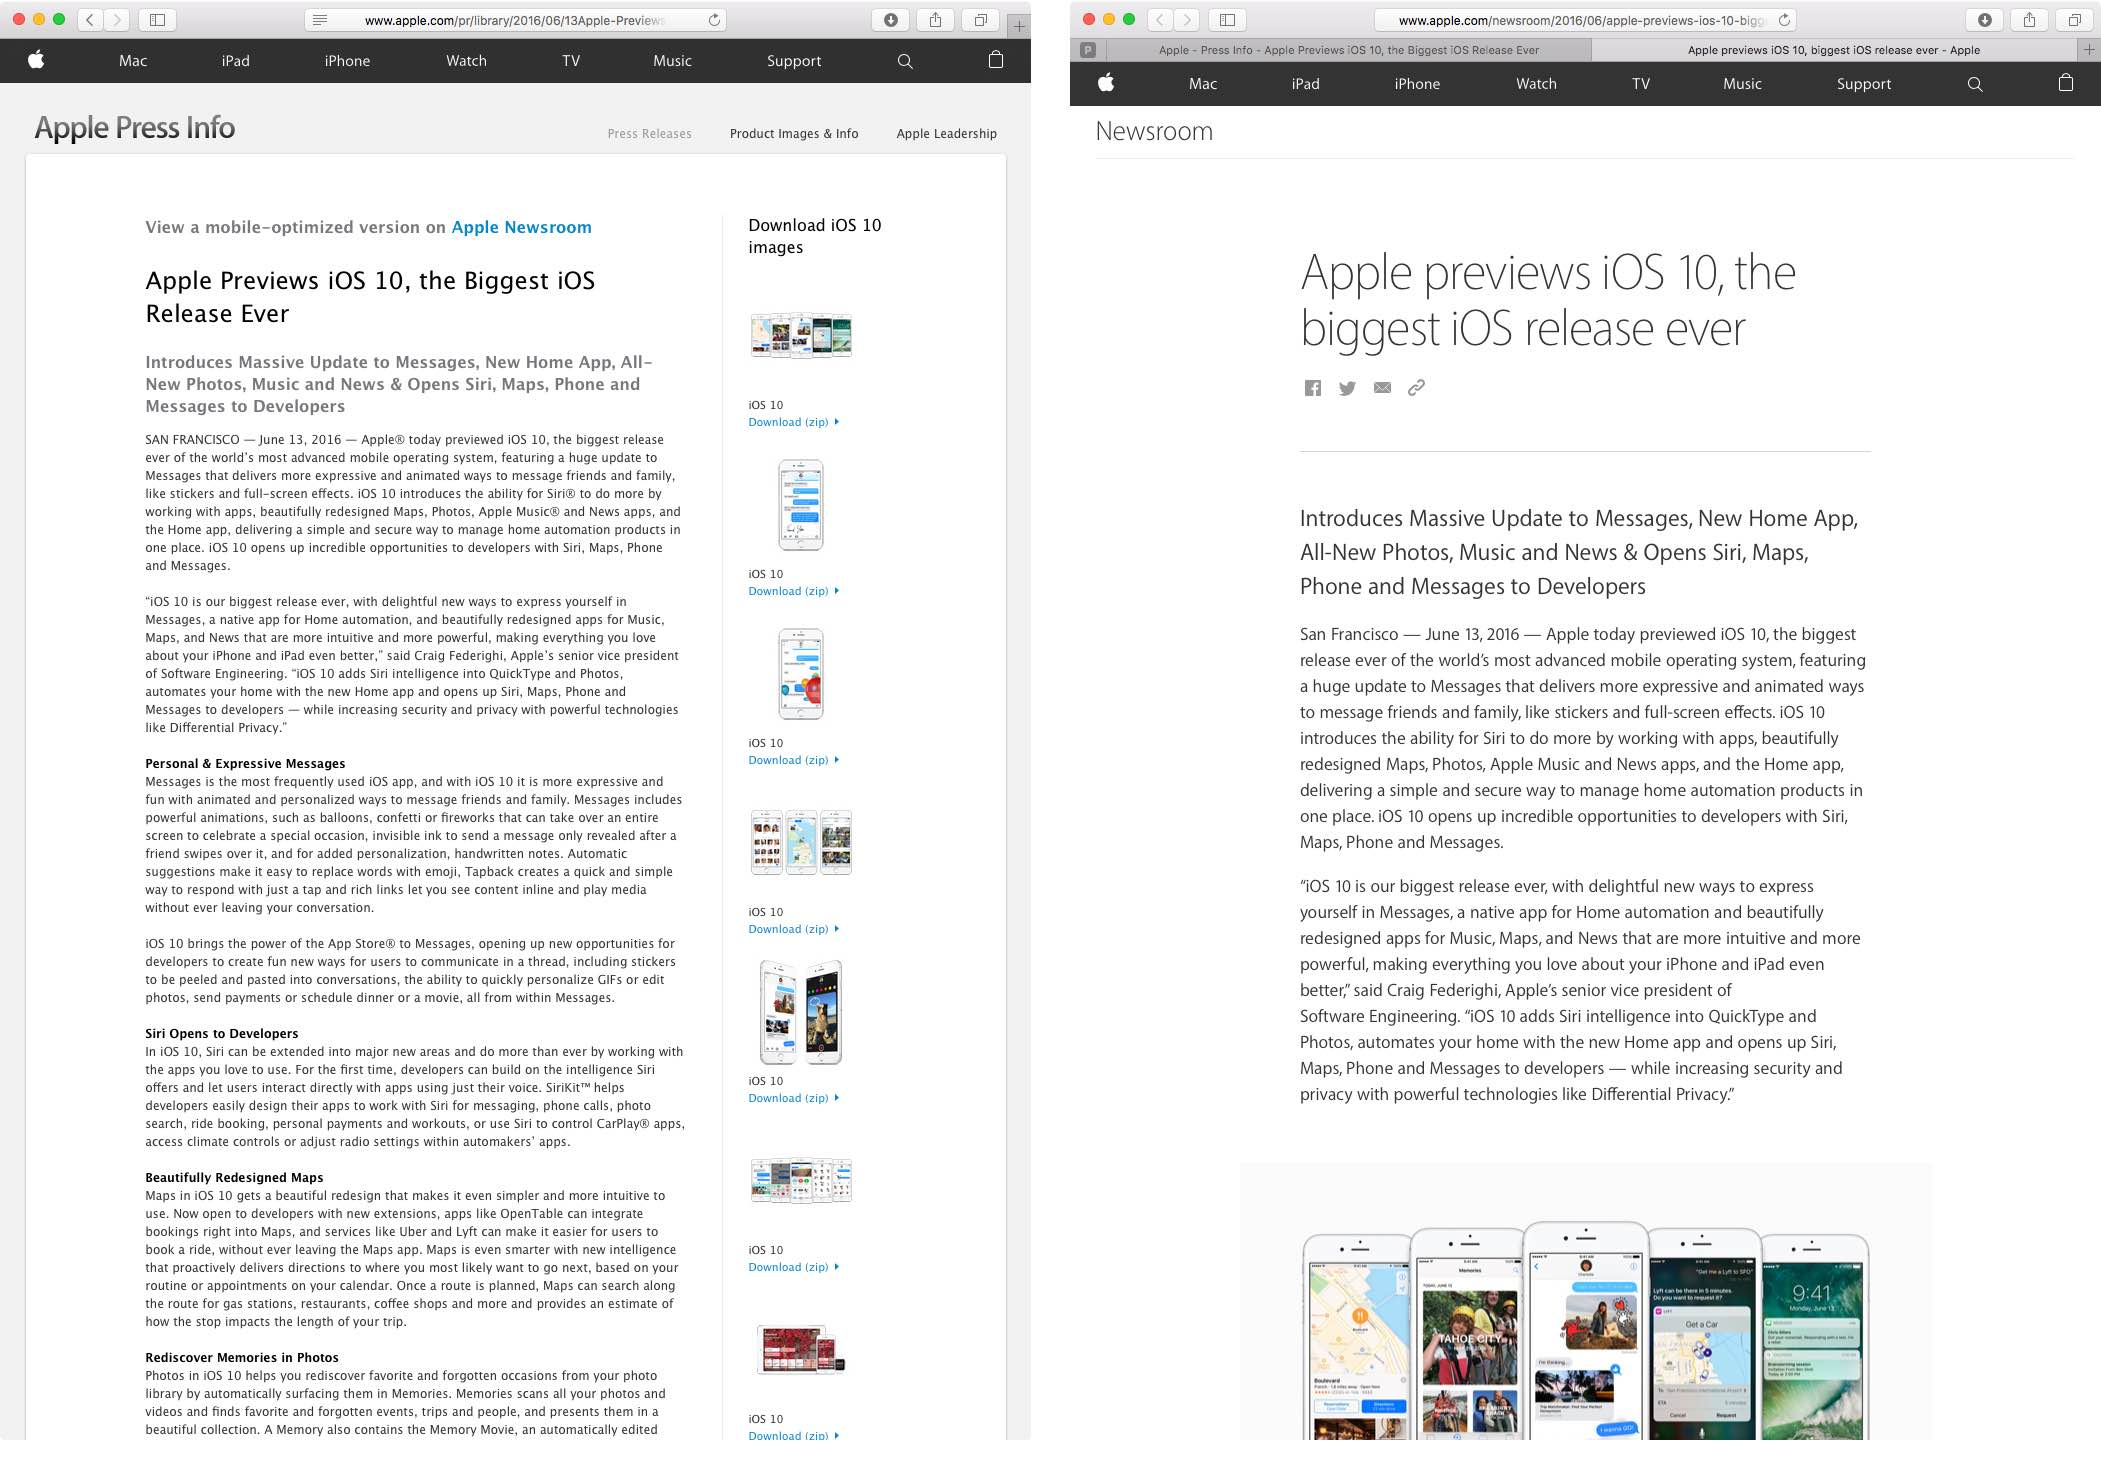 Apple Newsroom desktop vs mobile web screenshot 001